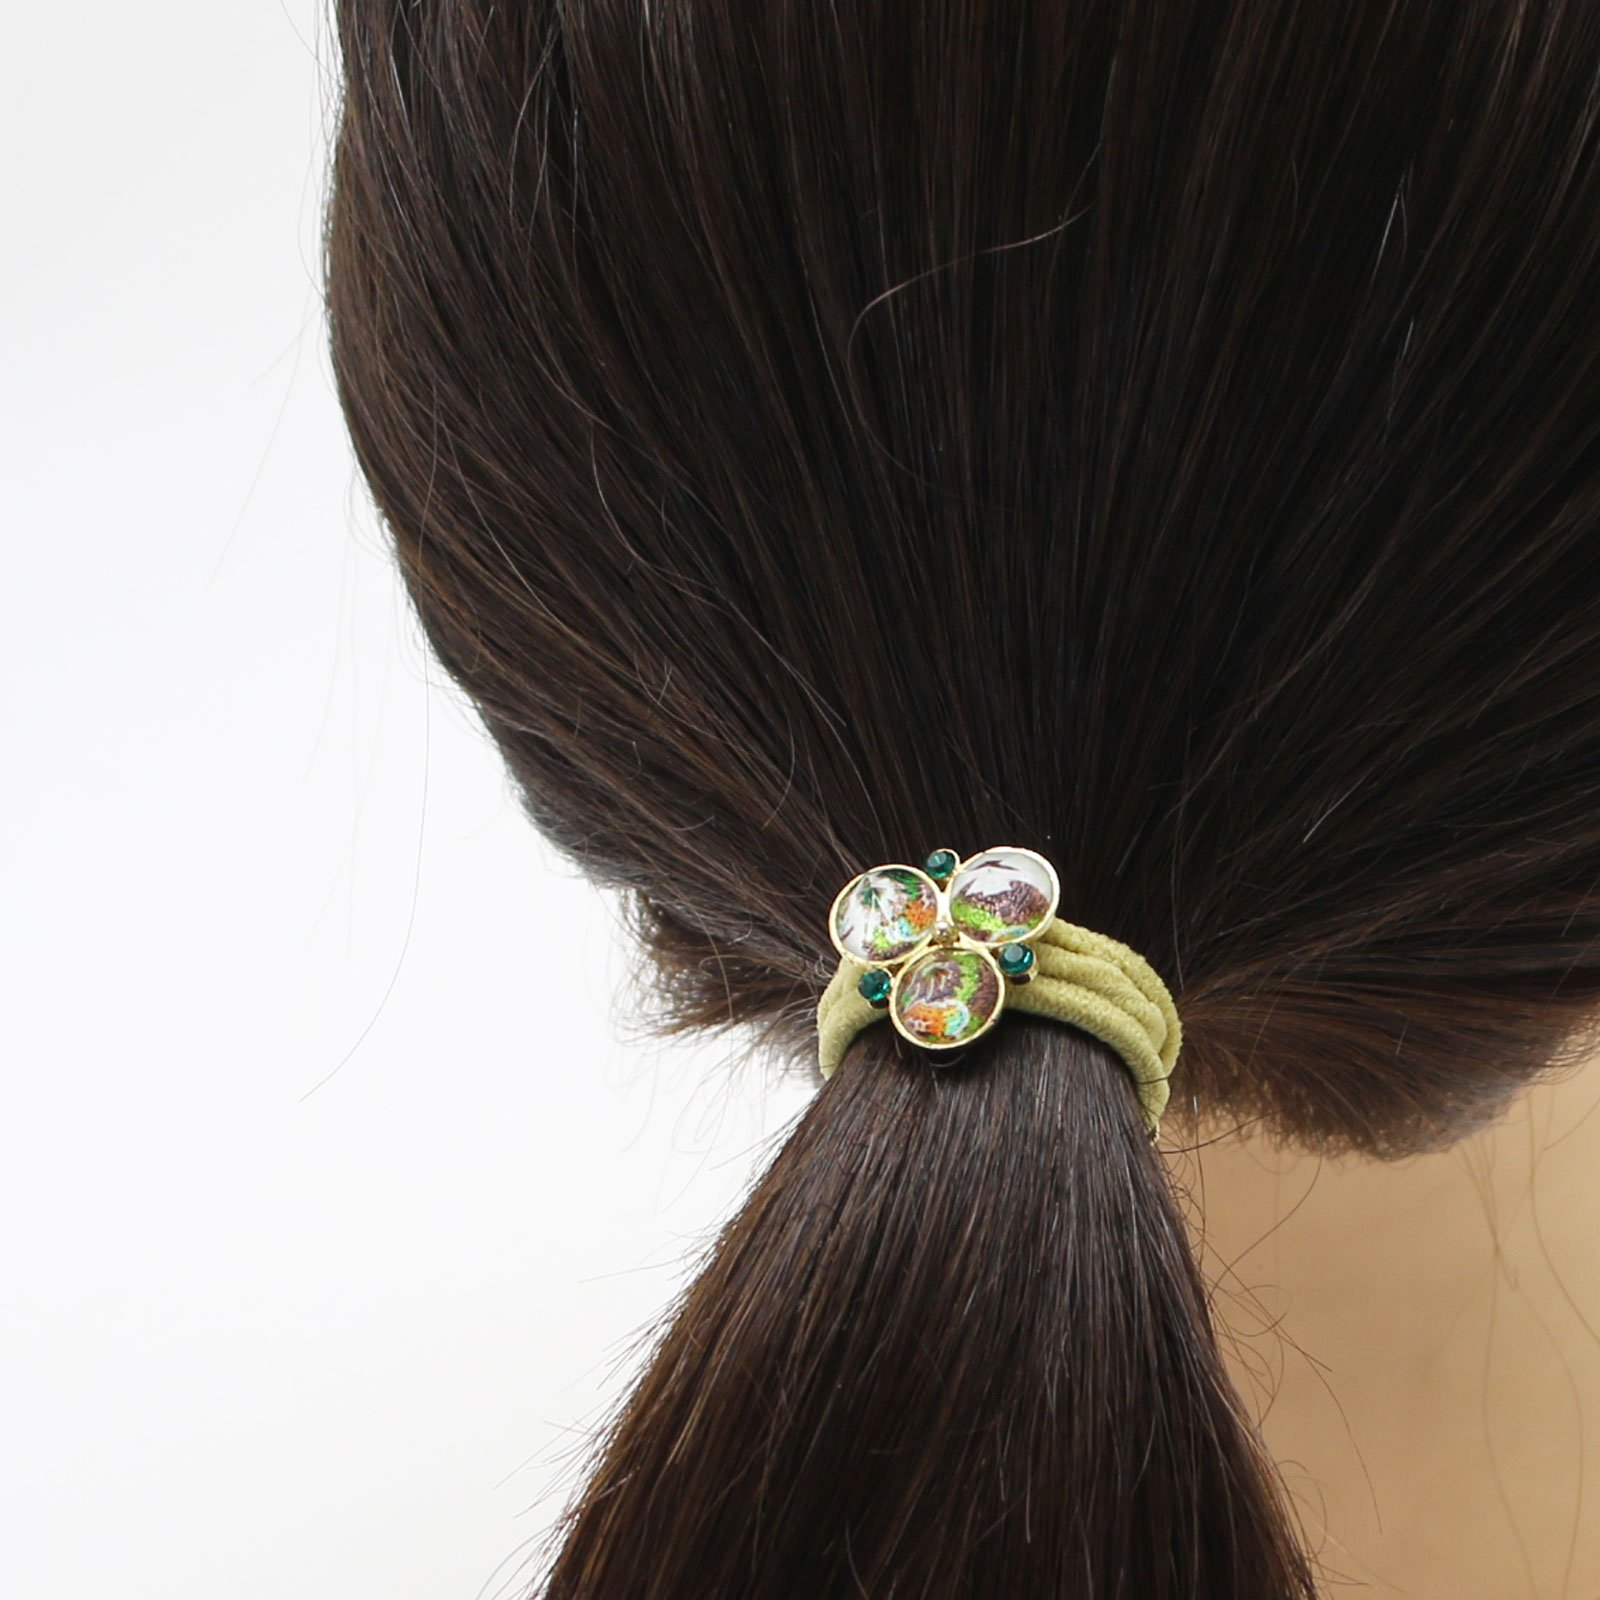 Tamarusan Ponytail Holder Small Size Pansy Yellow Green Unisex High-Grade by TAMARUSAN (Image #4)